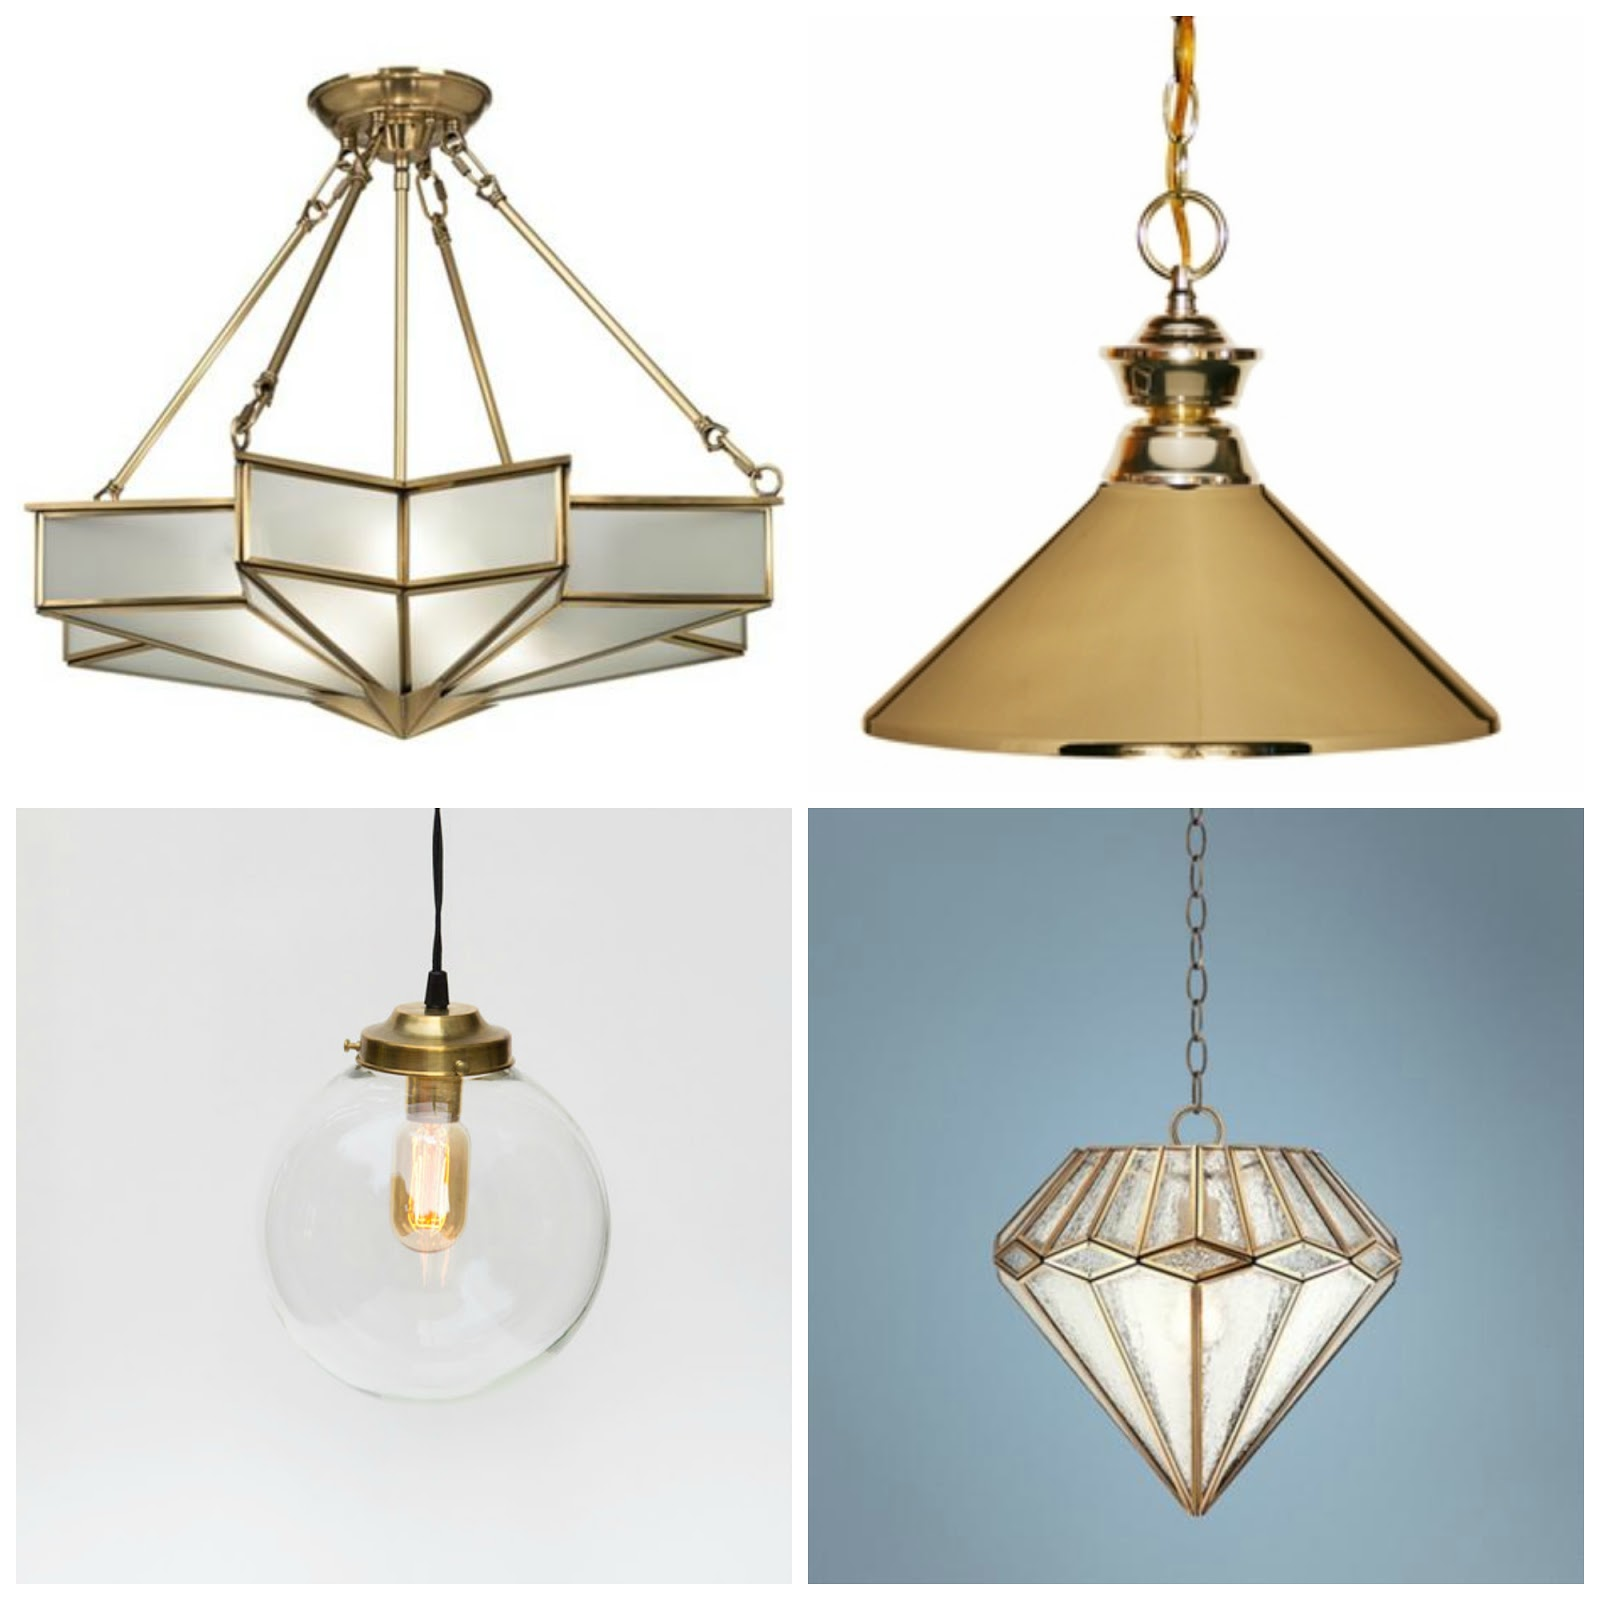 Rosa Beltran Design: BRASS PENDANT / CEILING LIGHT ROUND UP